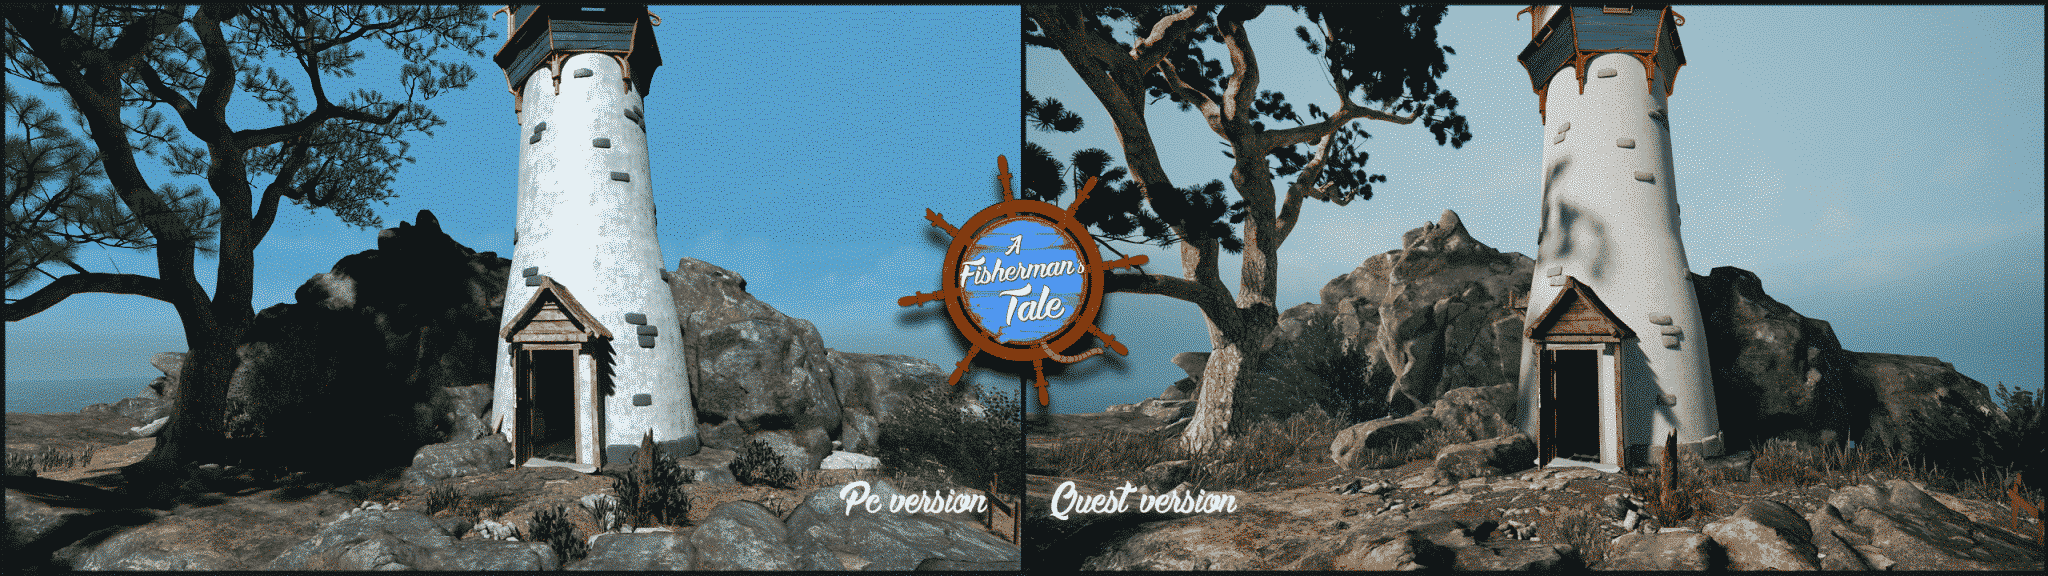 A Fisherman's Tale on the Oculus Quest. Credit: A Fisherman's Tale.